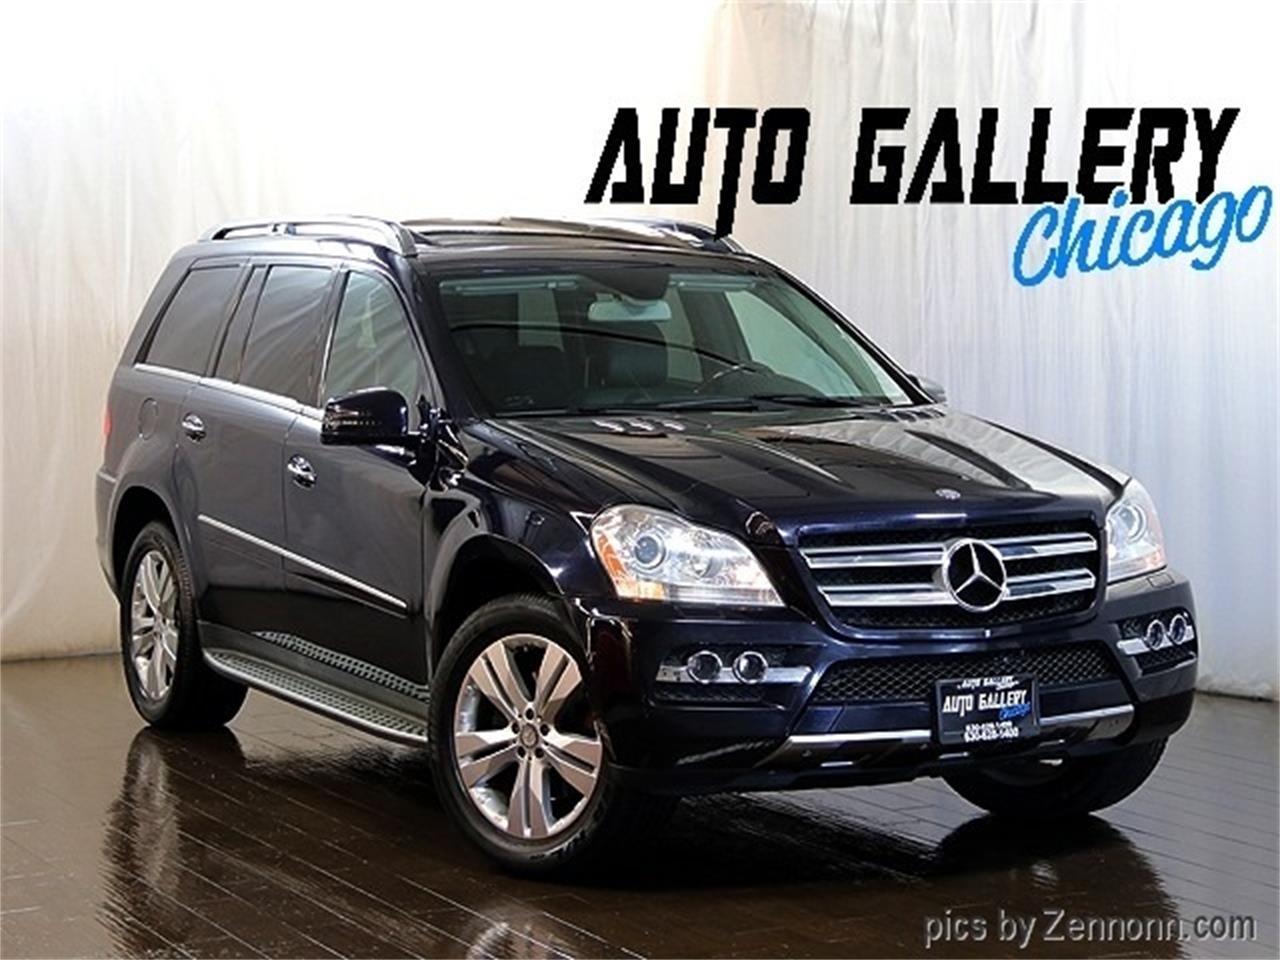 for sale 2011 mercedes-benz gl450 in addison, illinois cars - addison, il at geebo